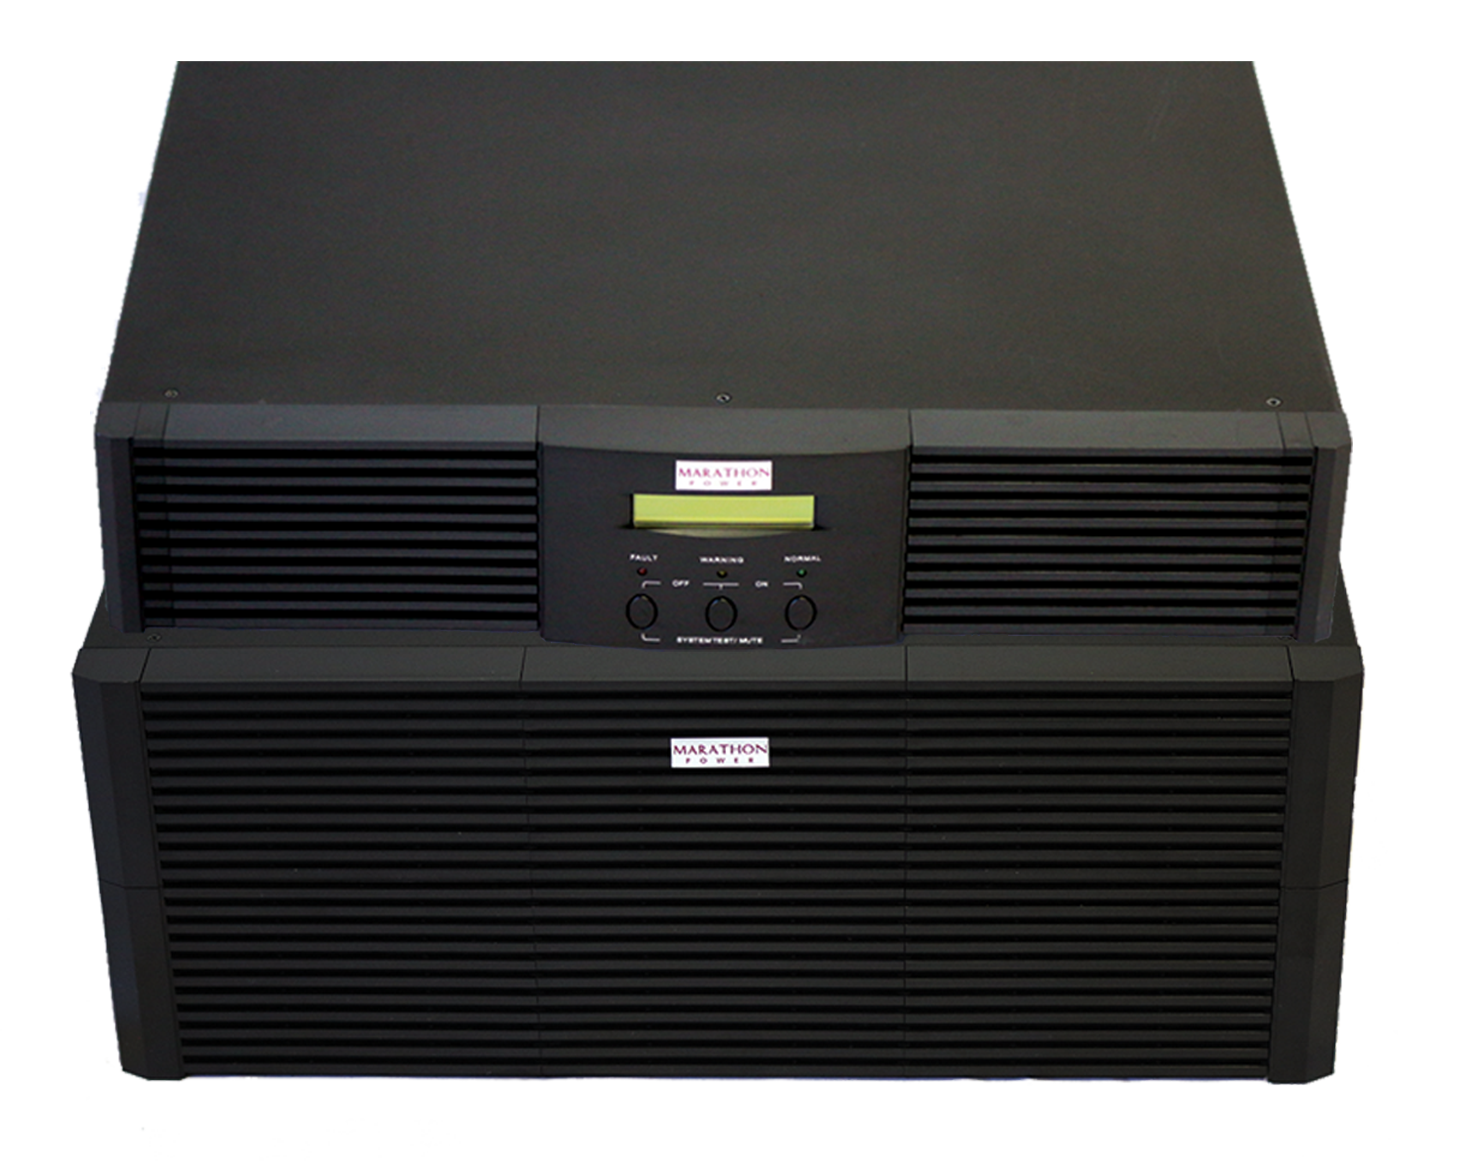 BATTERYLESS TRUE ON-LINE UPS - Maintenance free, battery-less, double conversion UPS. The most 'Green' of all UPS technologies offering numerous advantages over conventional UPS's.